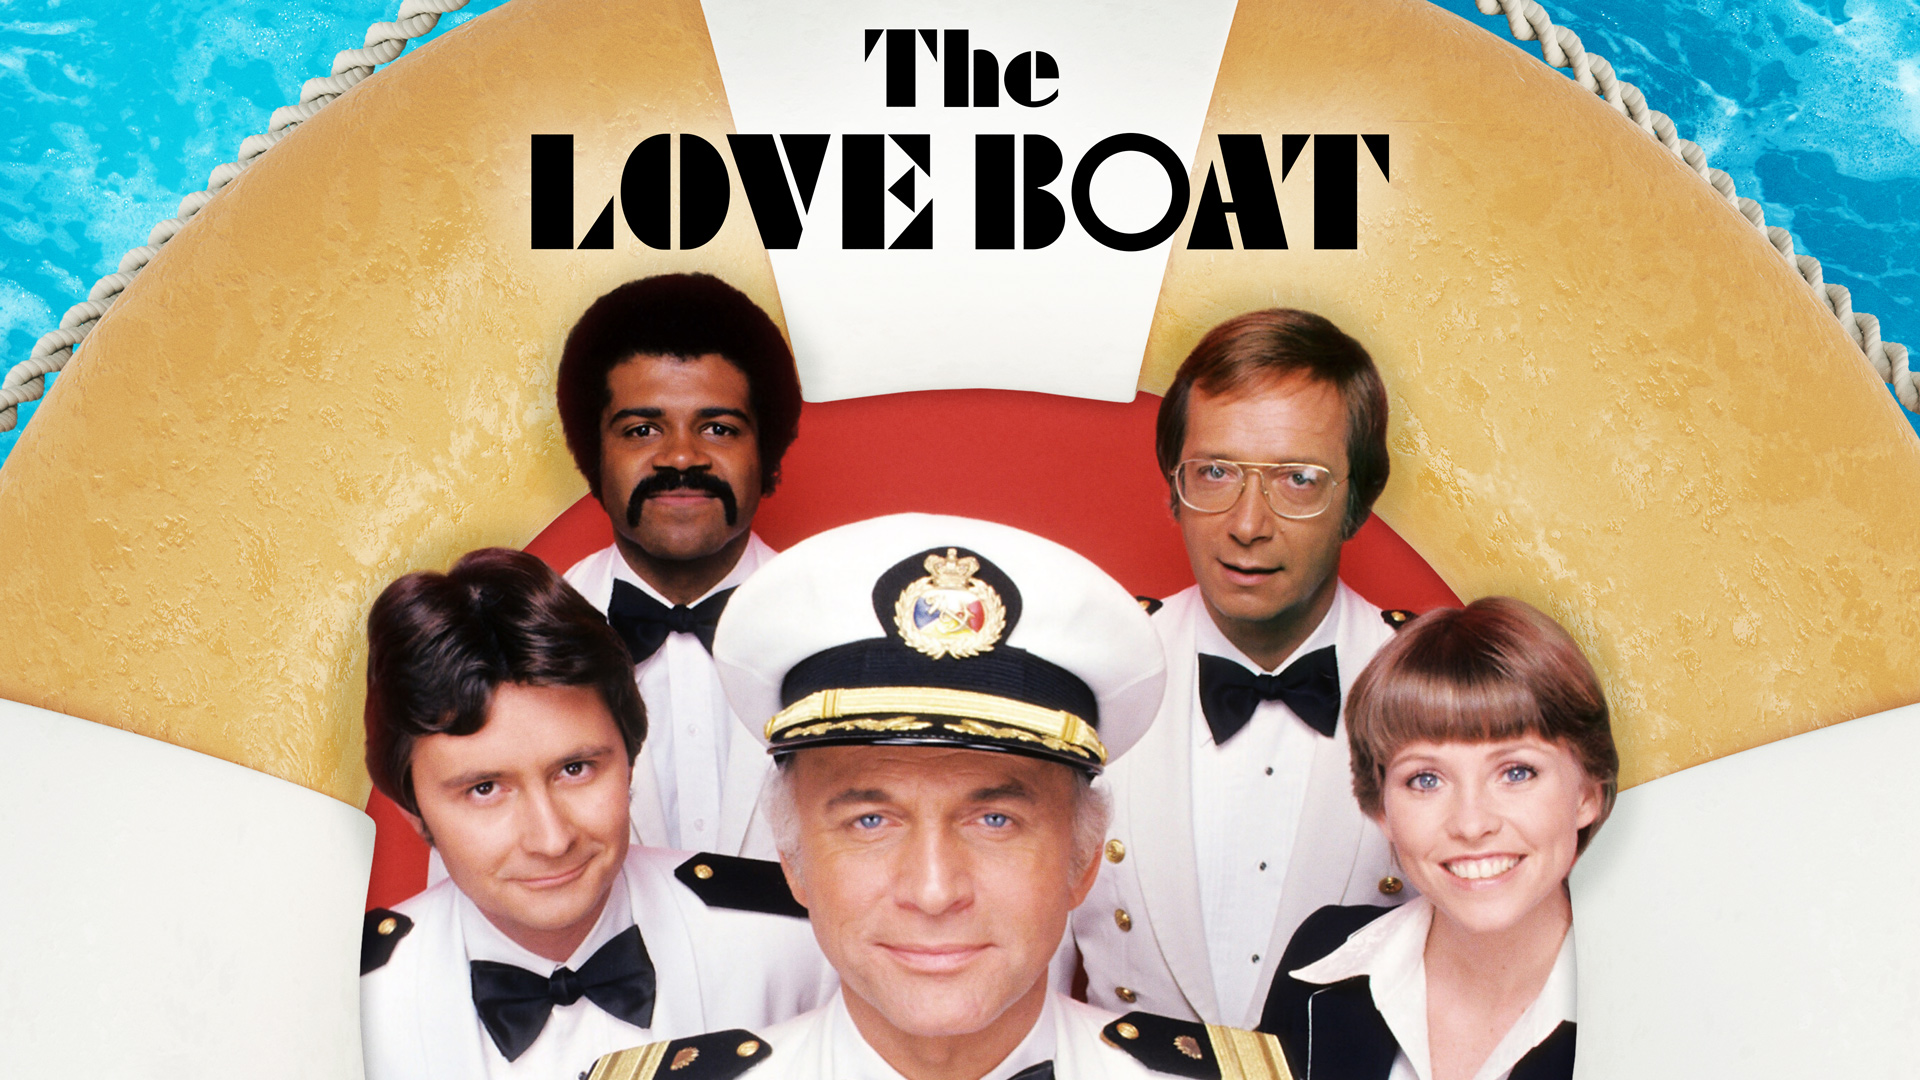 The Love Boat Season 1